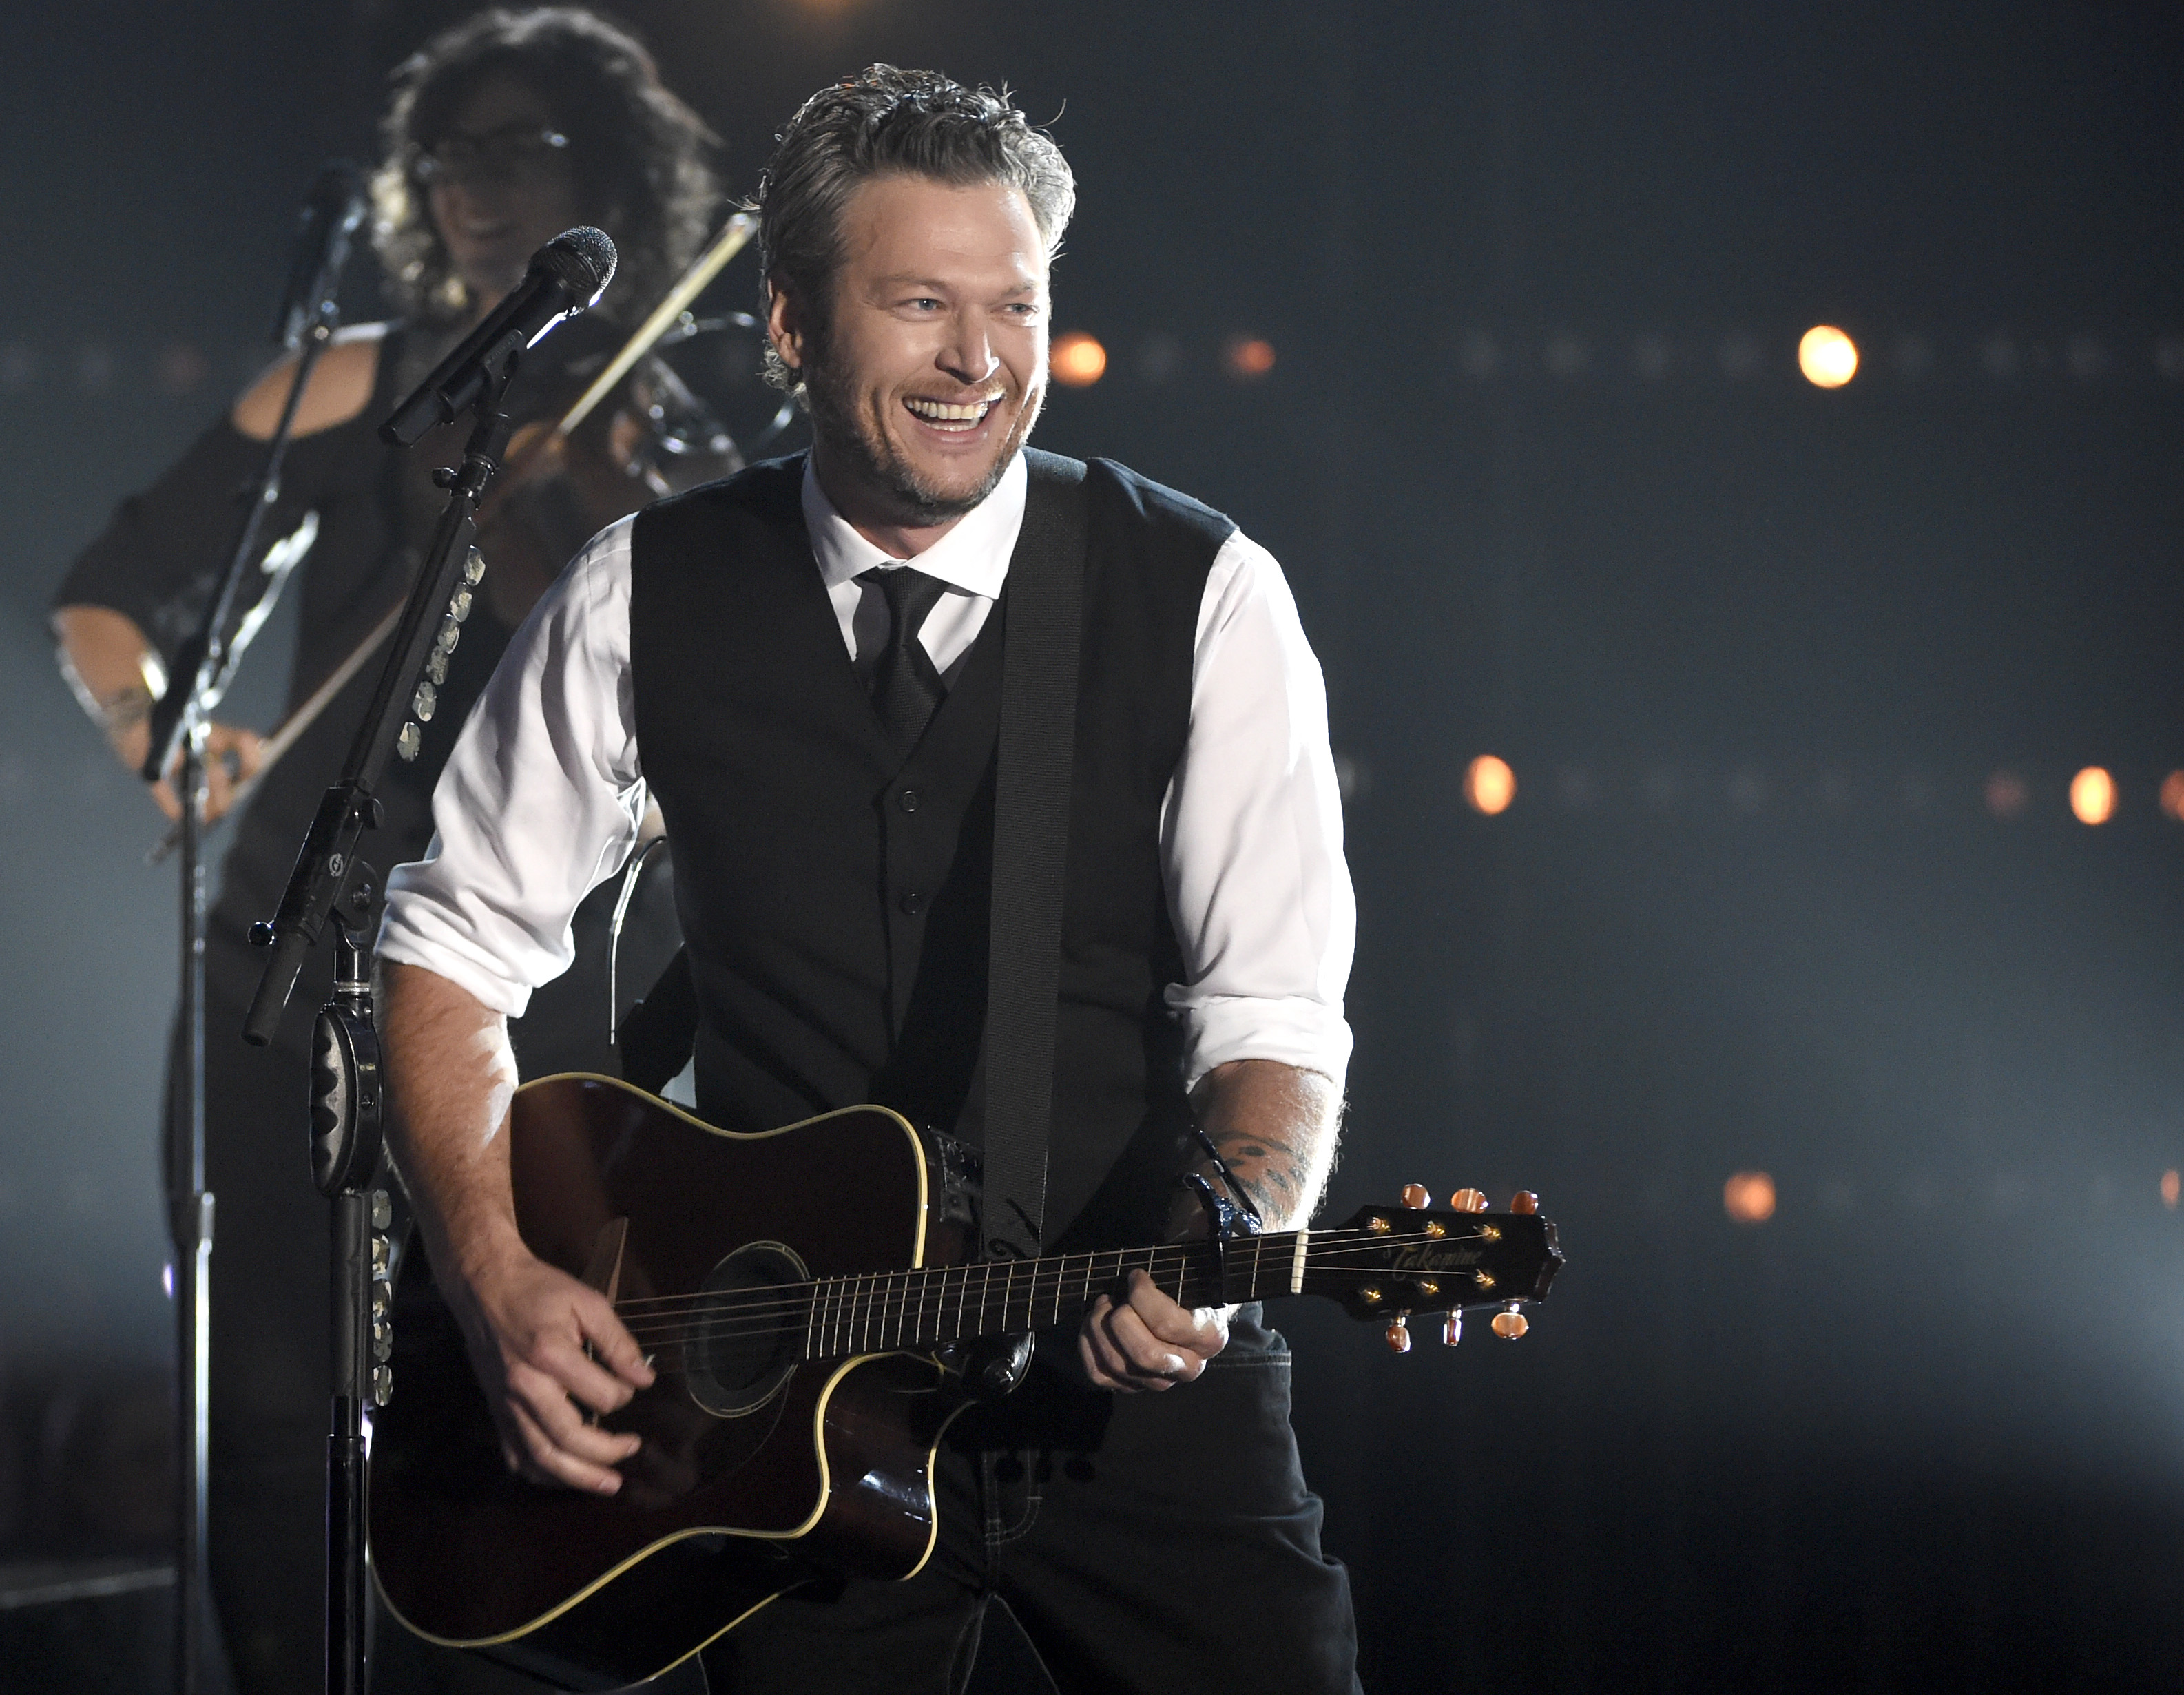 Blake Shelton performs at the 49th annual CMA Awards at the Bridgestone Arena on Wednesday, Nov. 4, 2015, in Nashville, Tenn. (Photo by Chris Pizzello/Invision/AP)